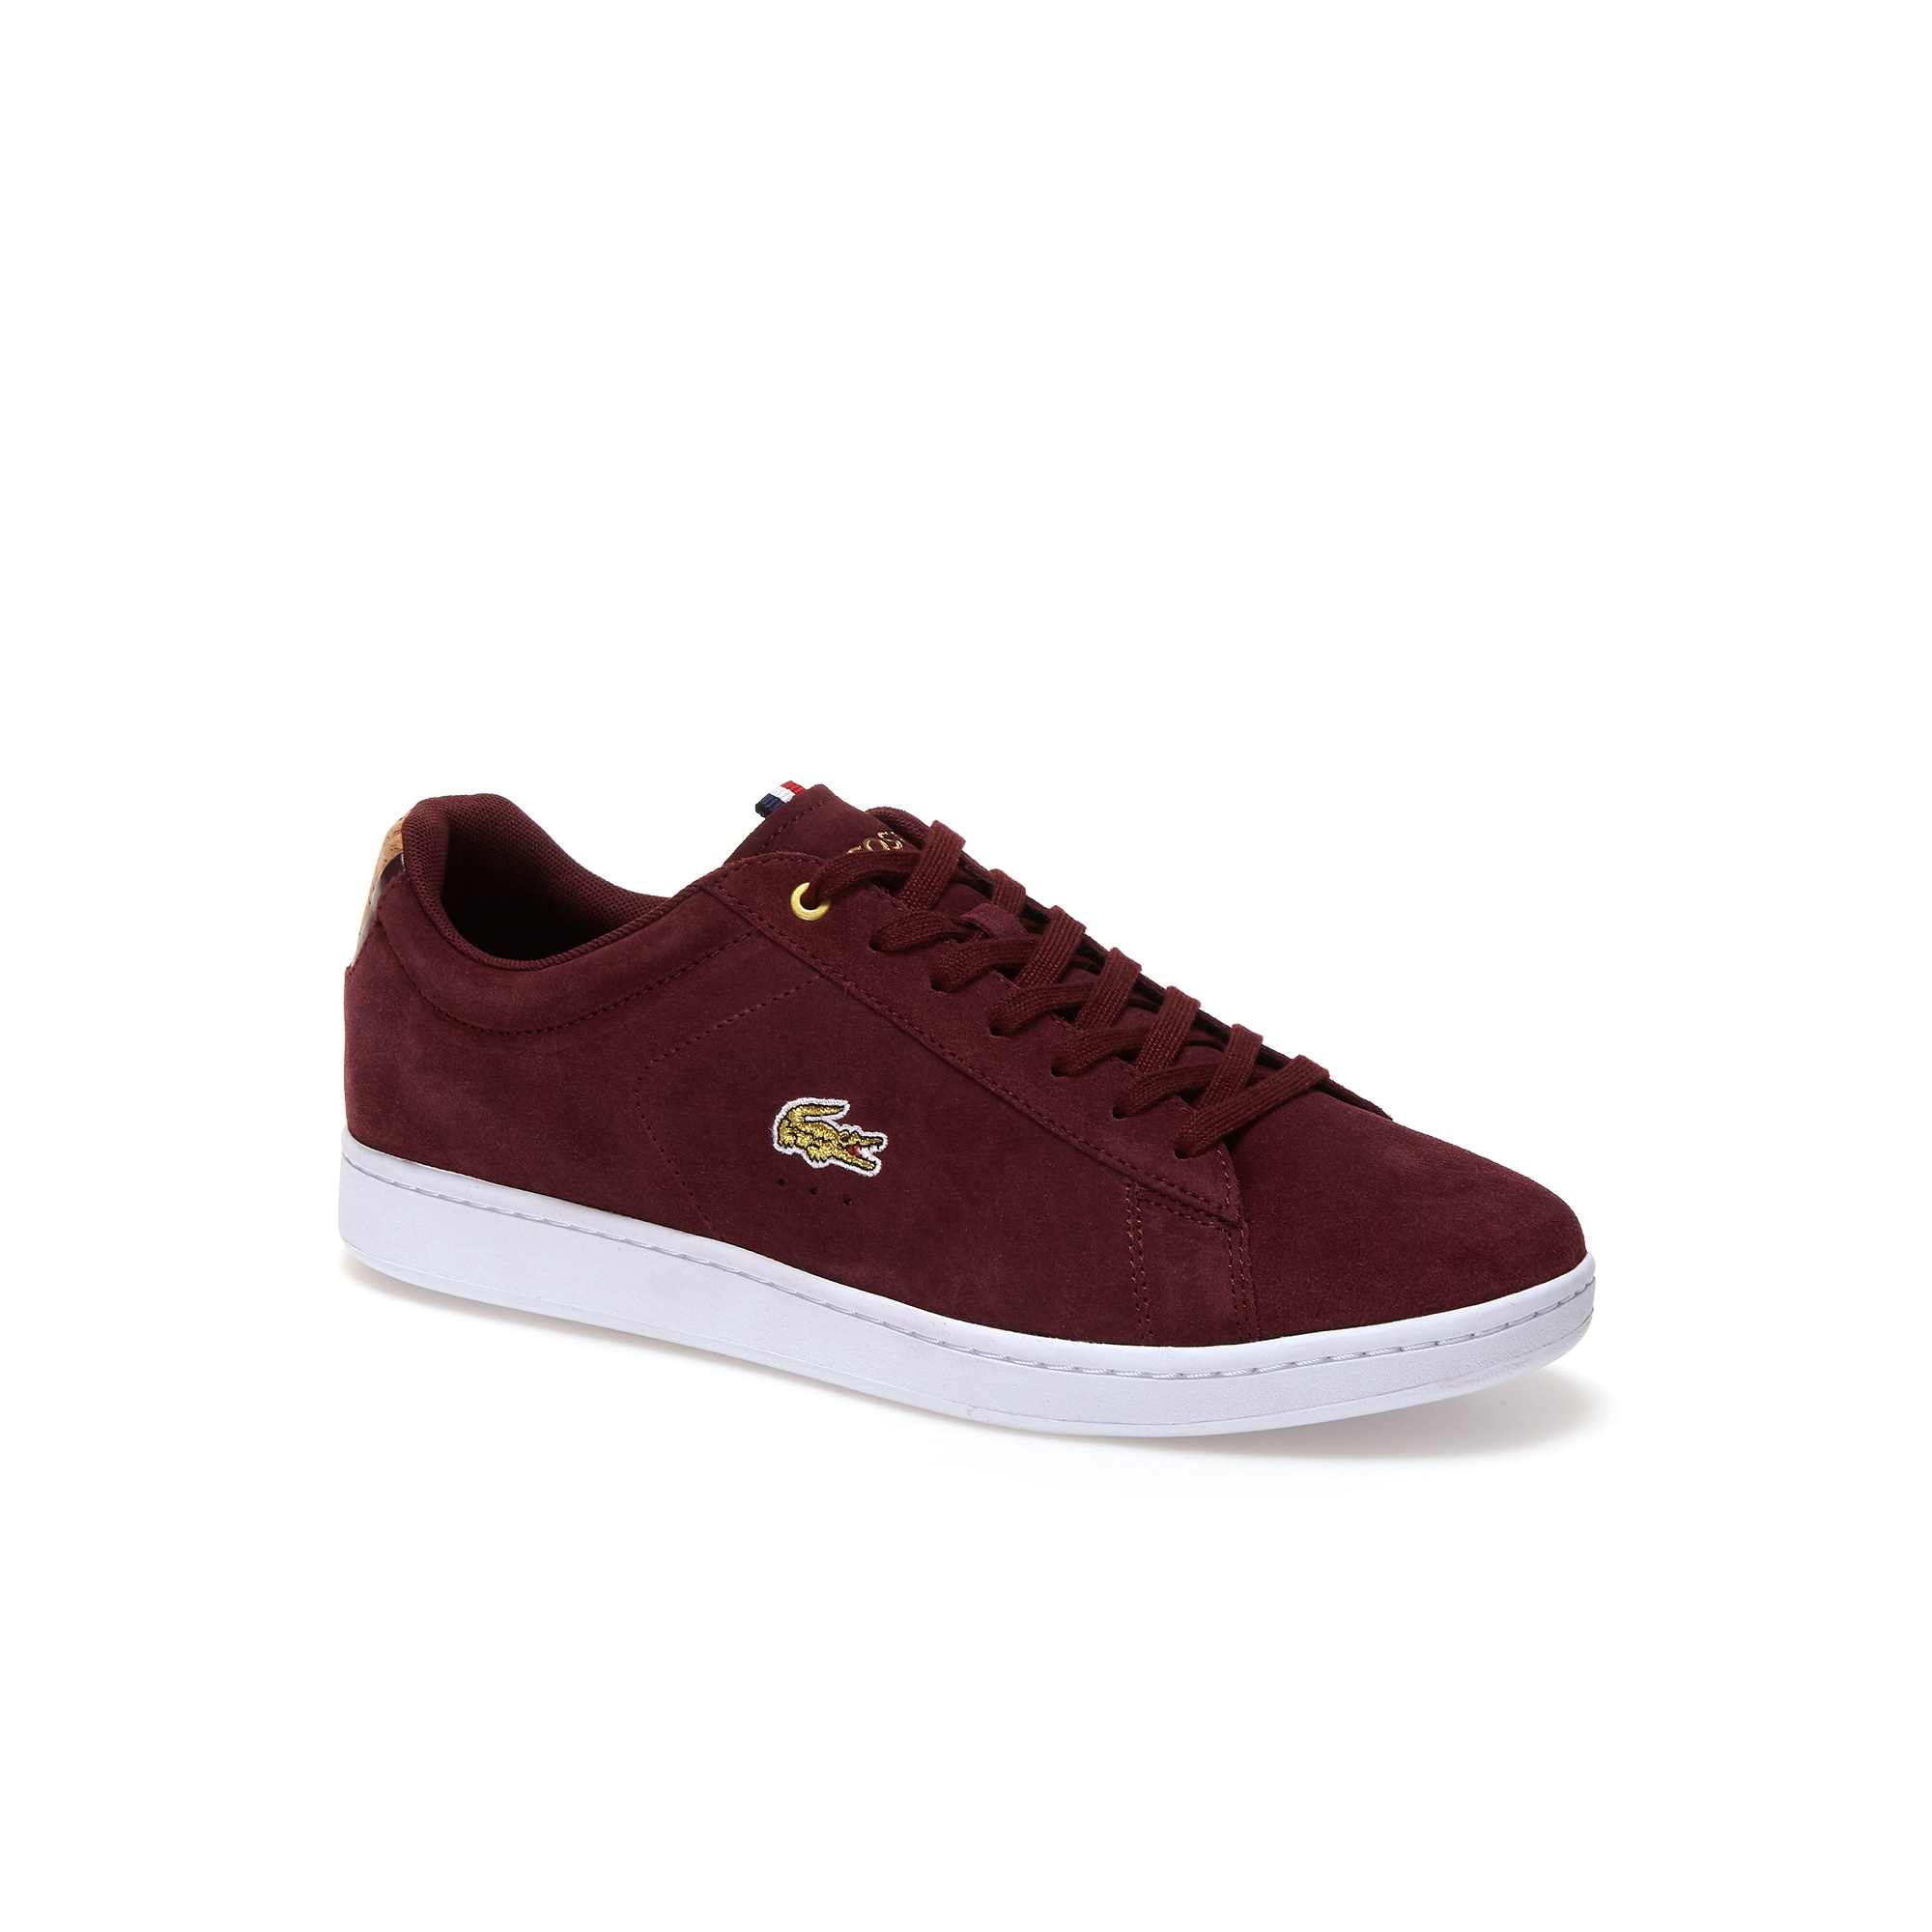 Men's Carnaby Evo Suede Trainers